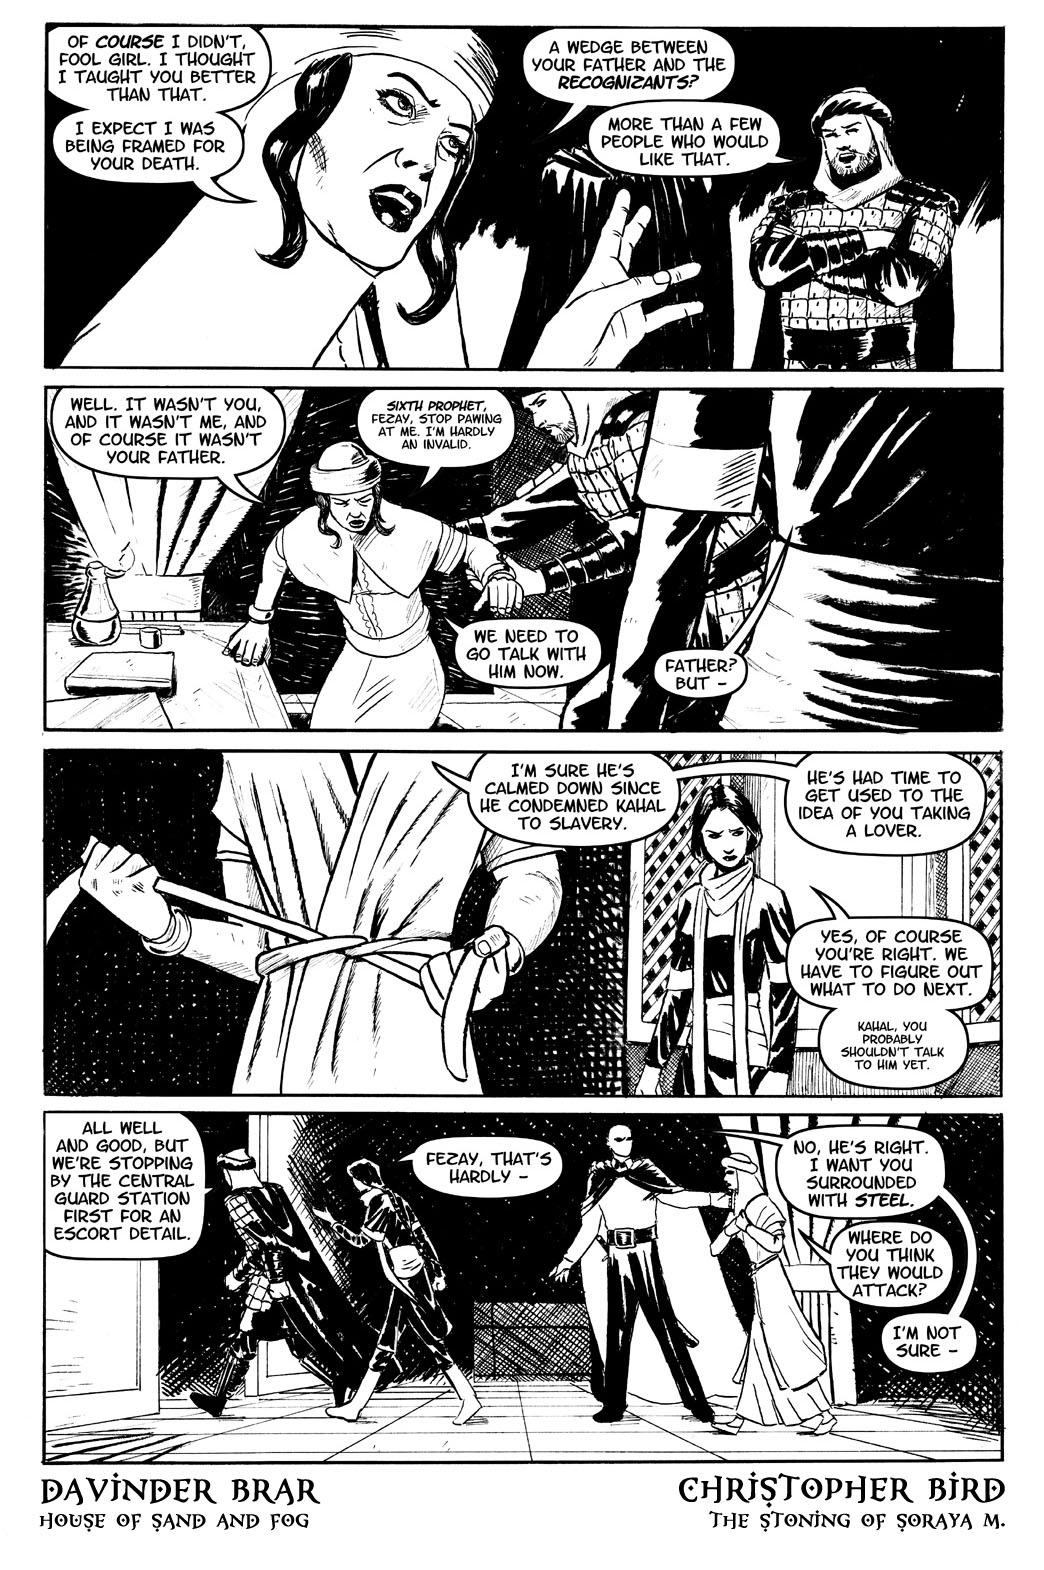 Book 5, page 7